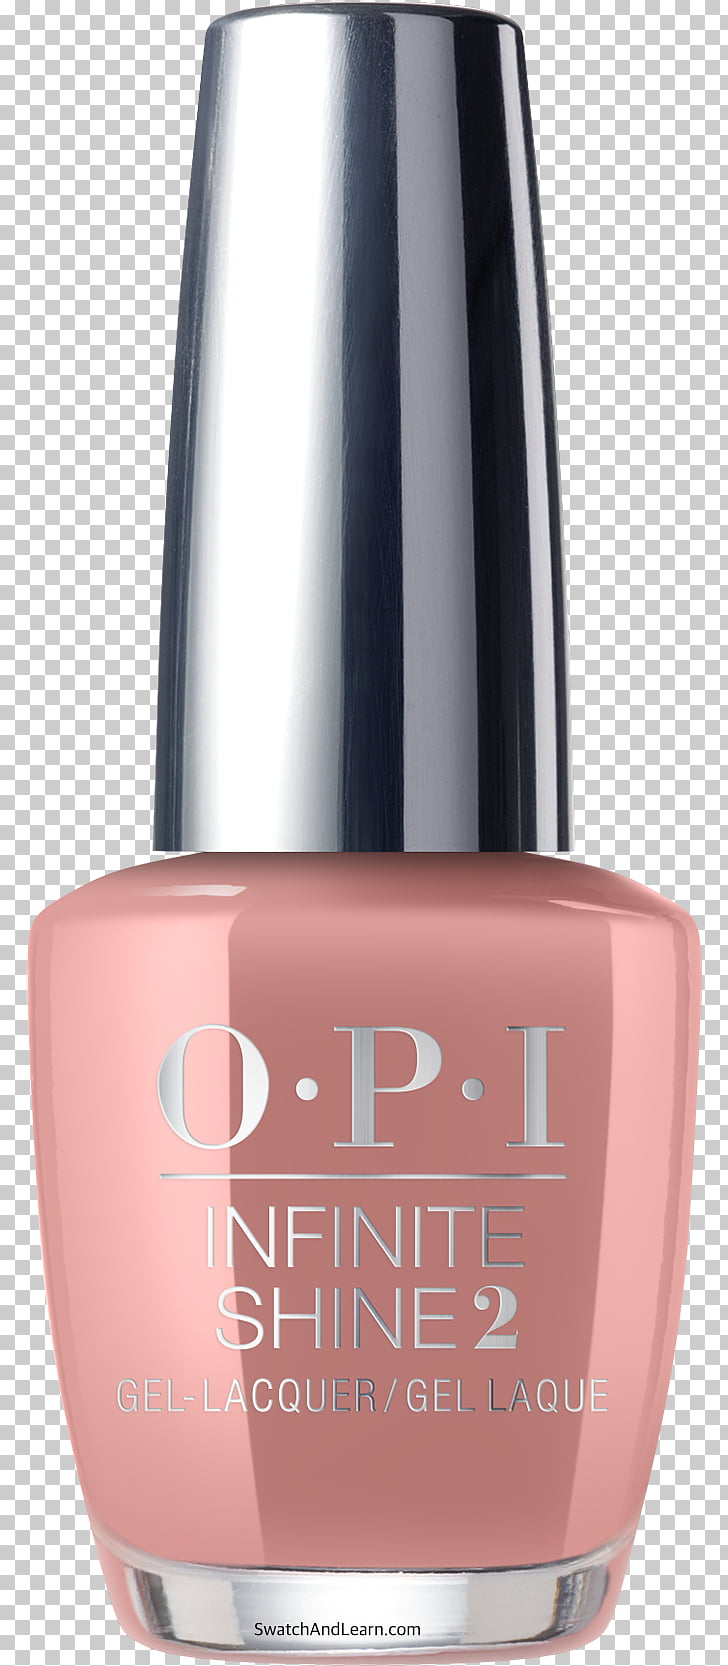 OPI Nail Lacquer OPI Infinite Shine2 OPI Products OPI.